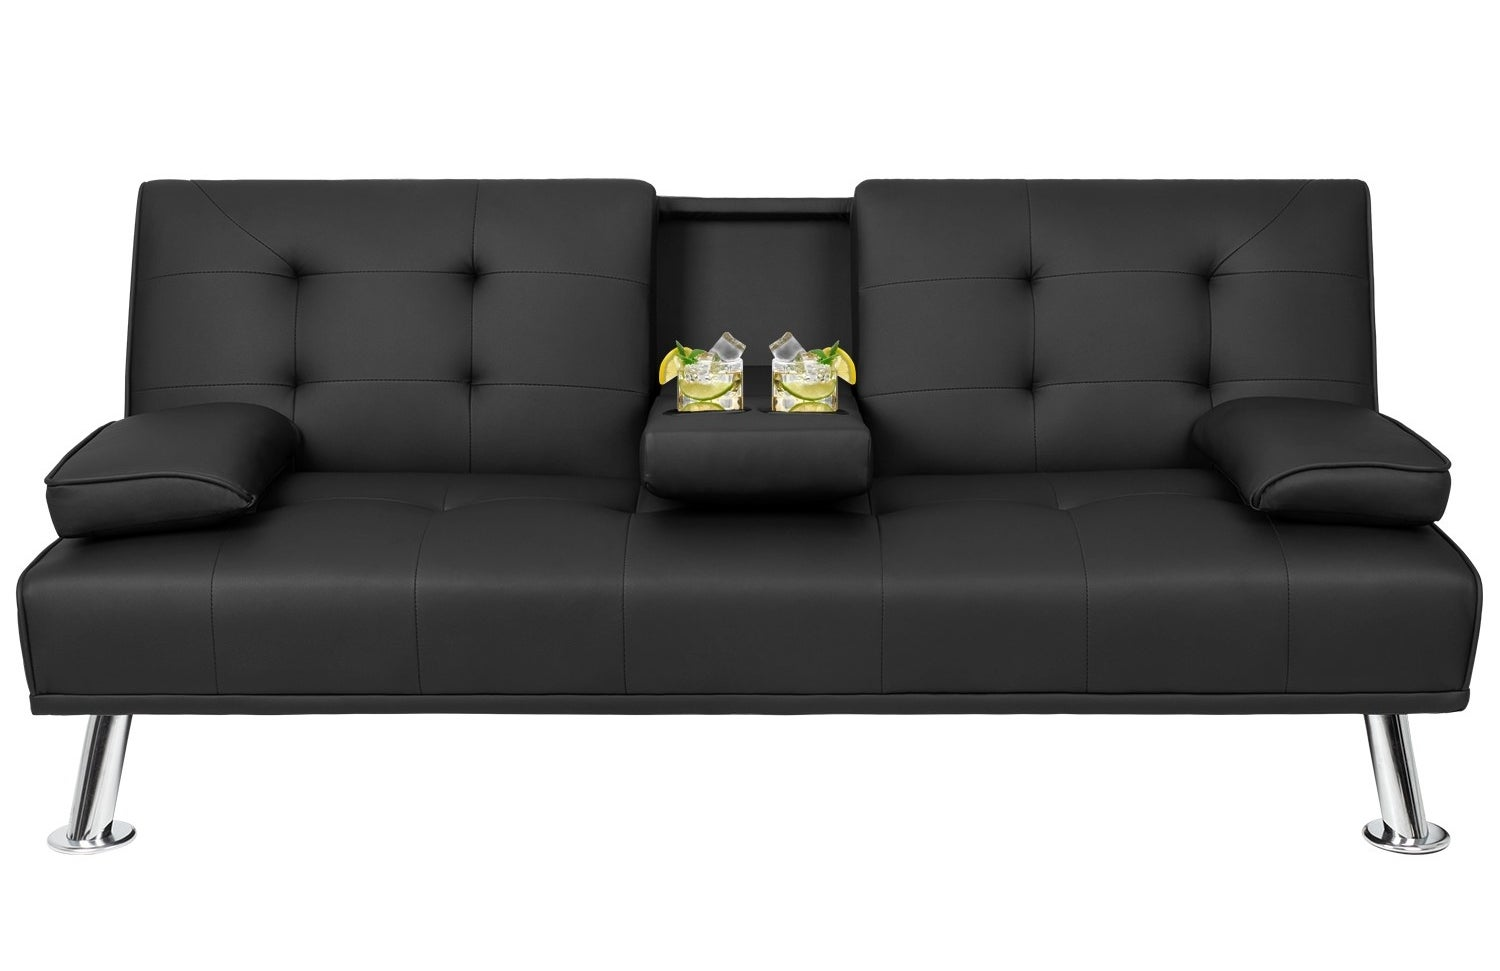 Black futon with cupholders in center console and silver legs